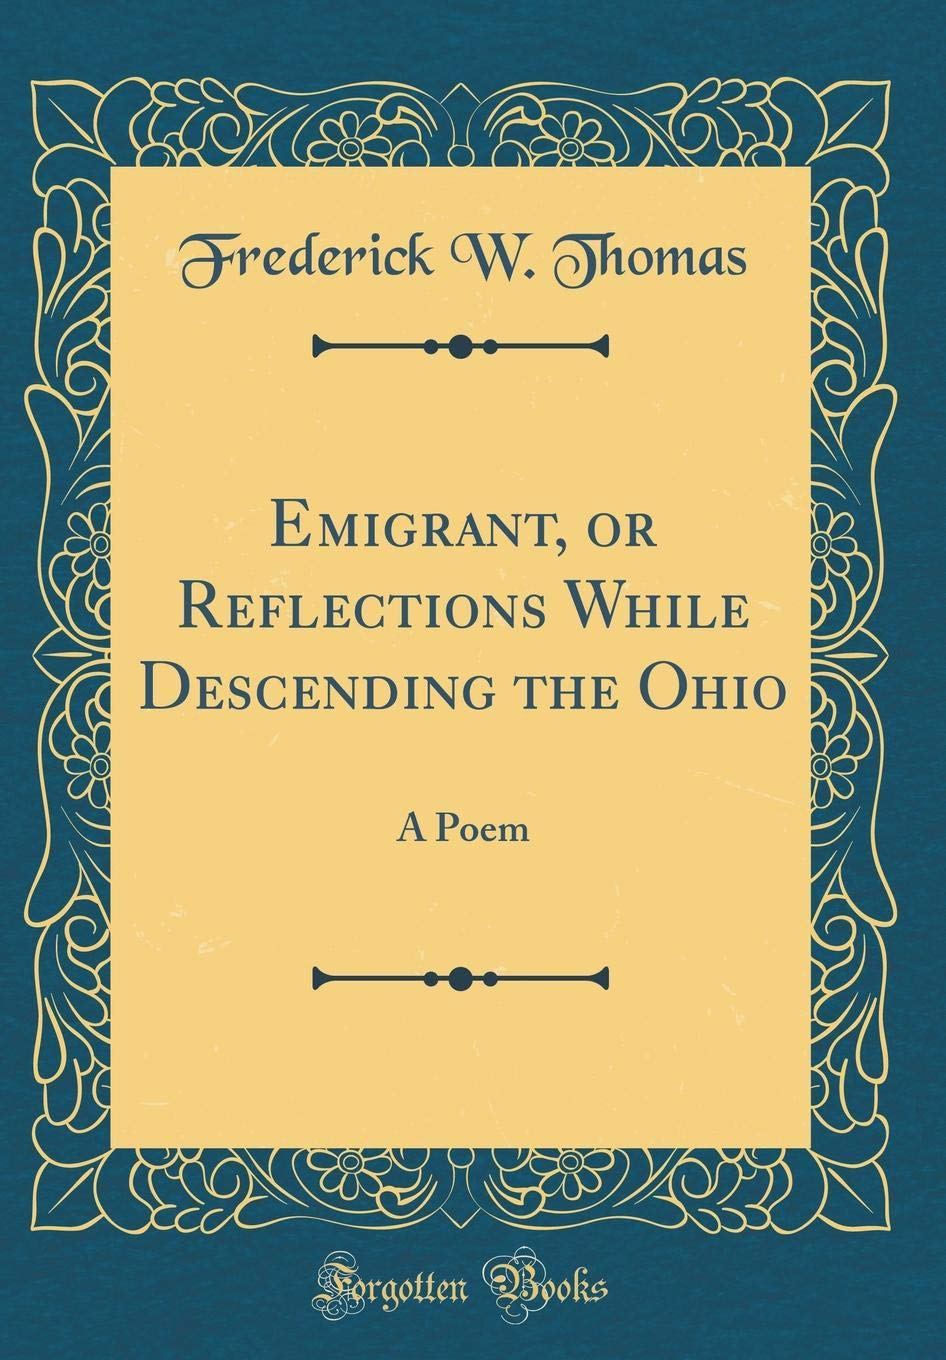 Emigrant Or Reflections While Descending The Ohio A Poem